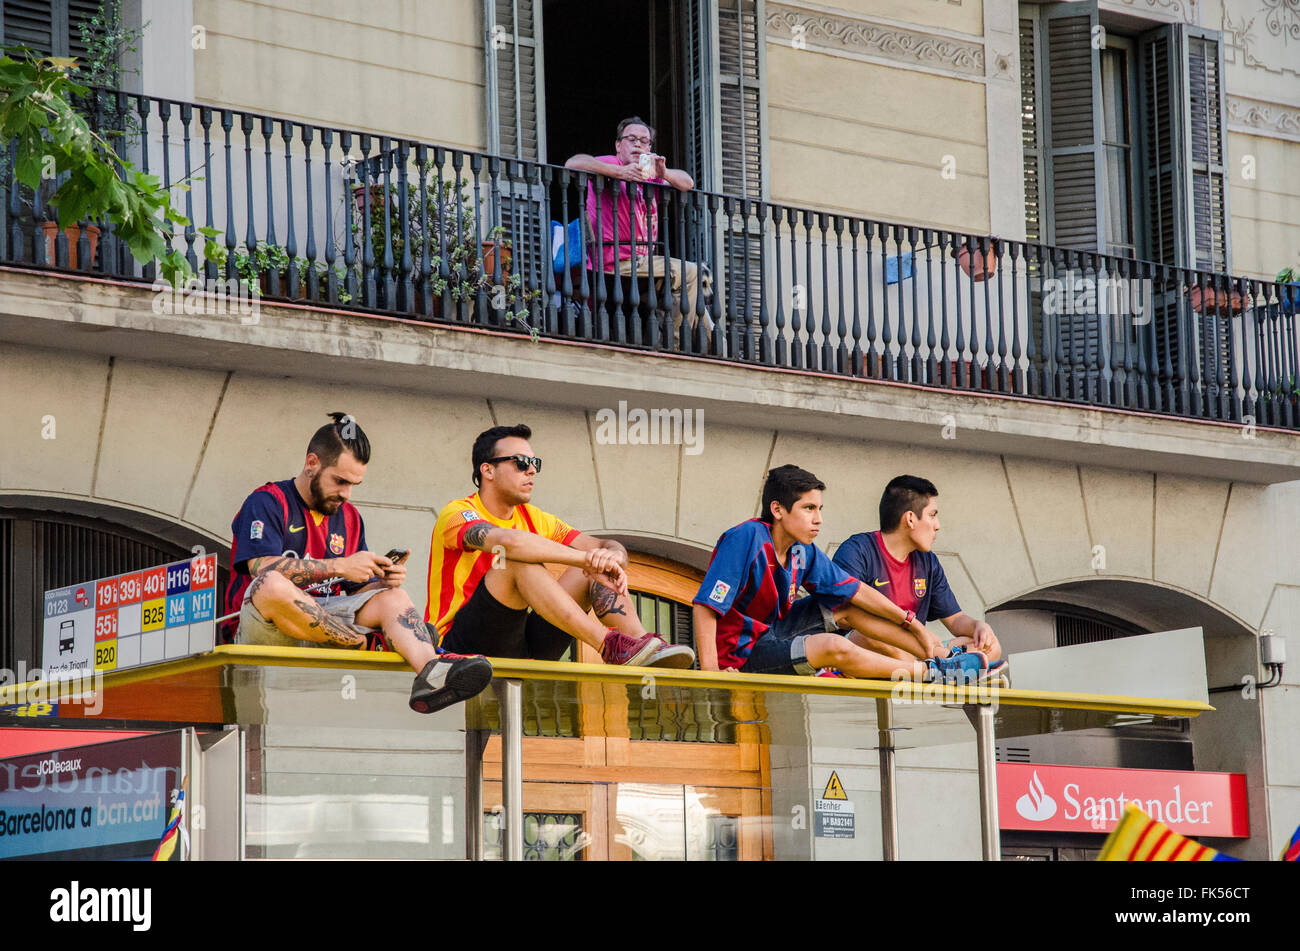 Fans of Futbol Club Barcelona waiting for the players  after winning the Cup. - Stock Image